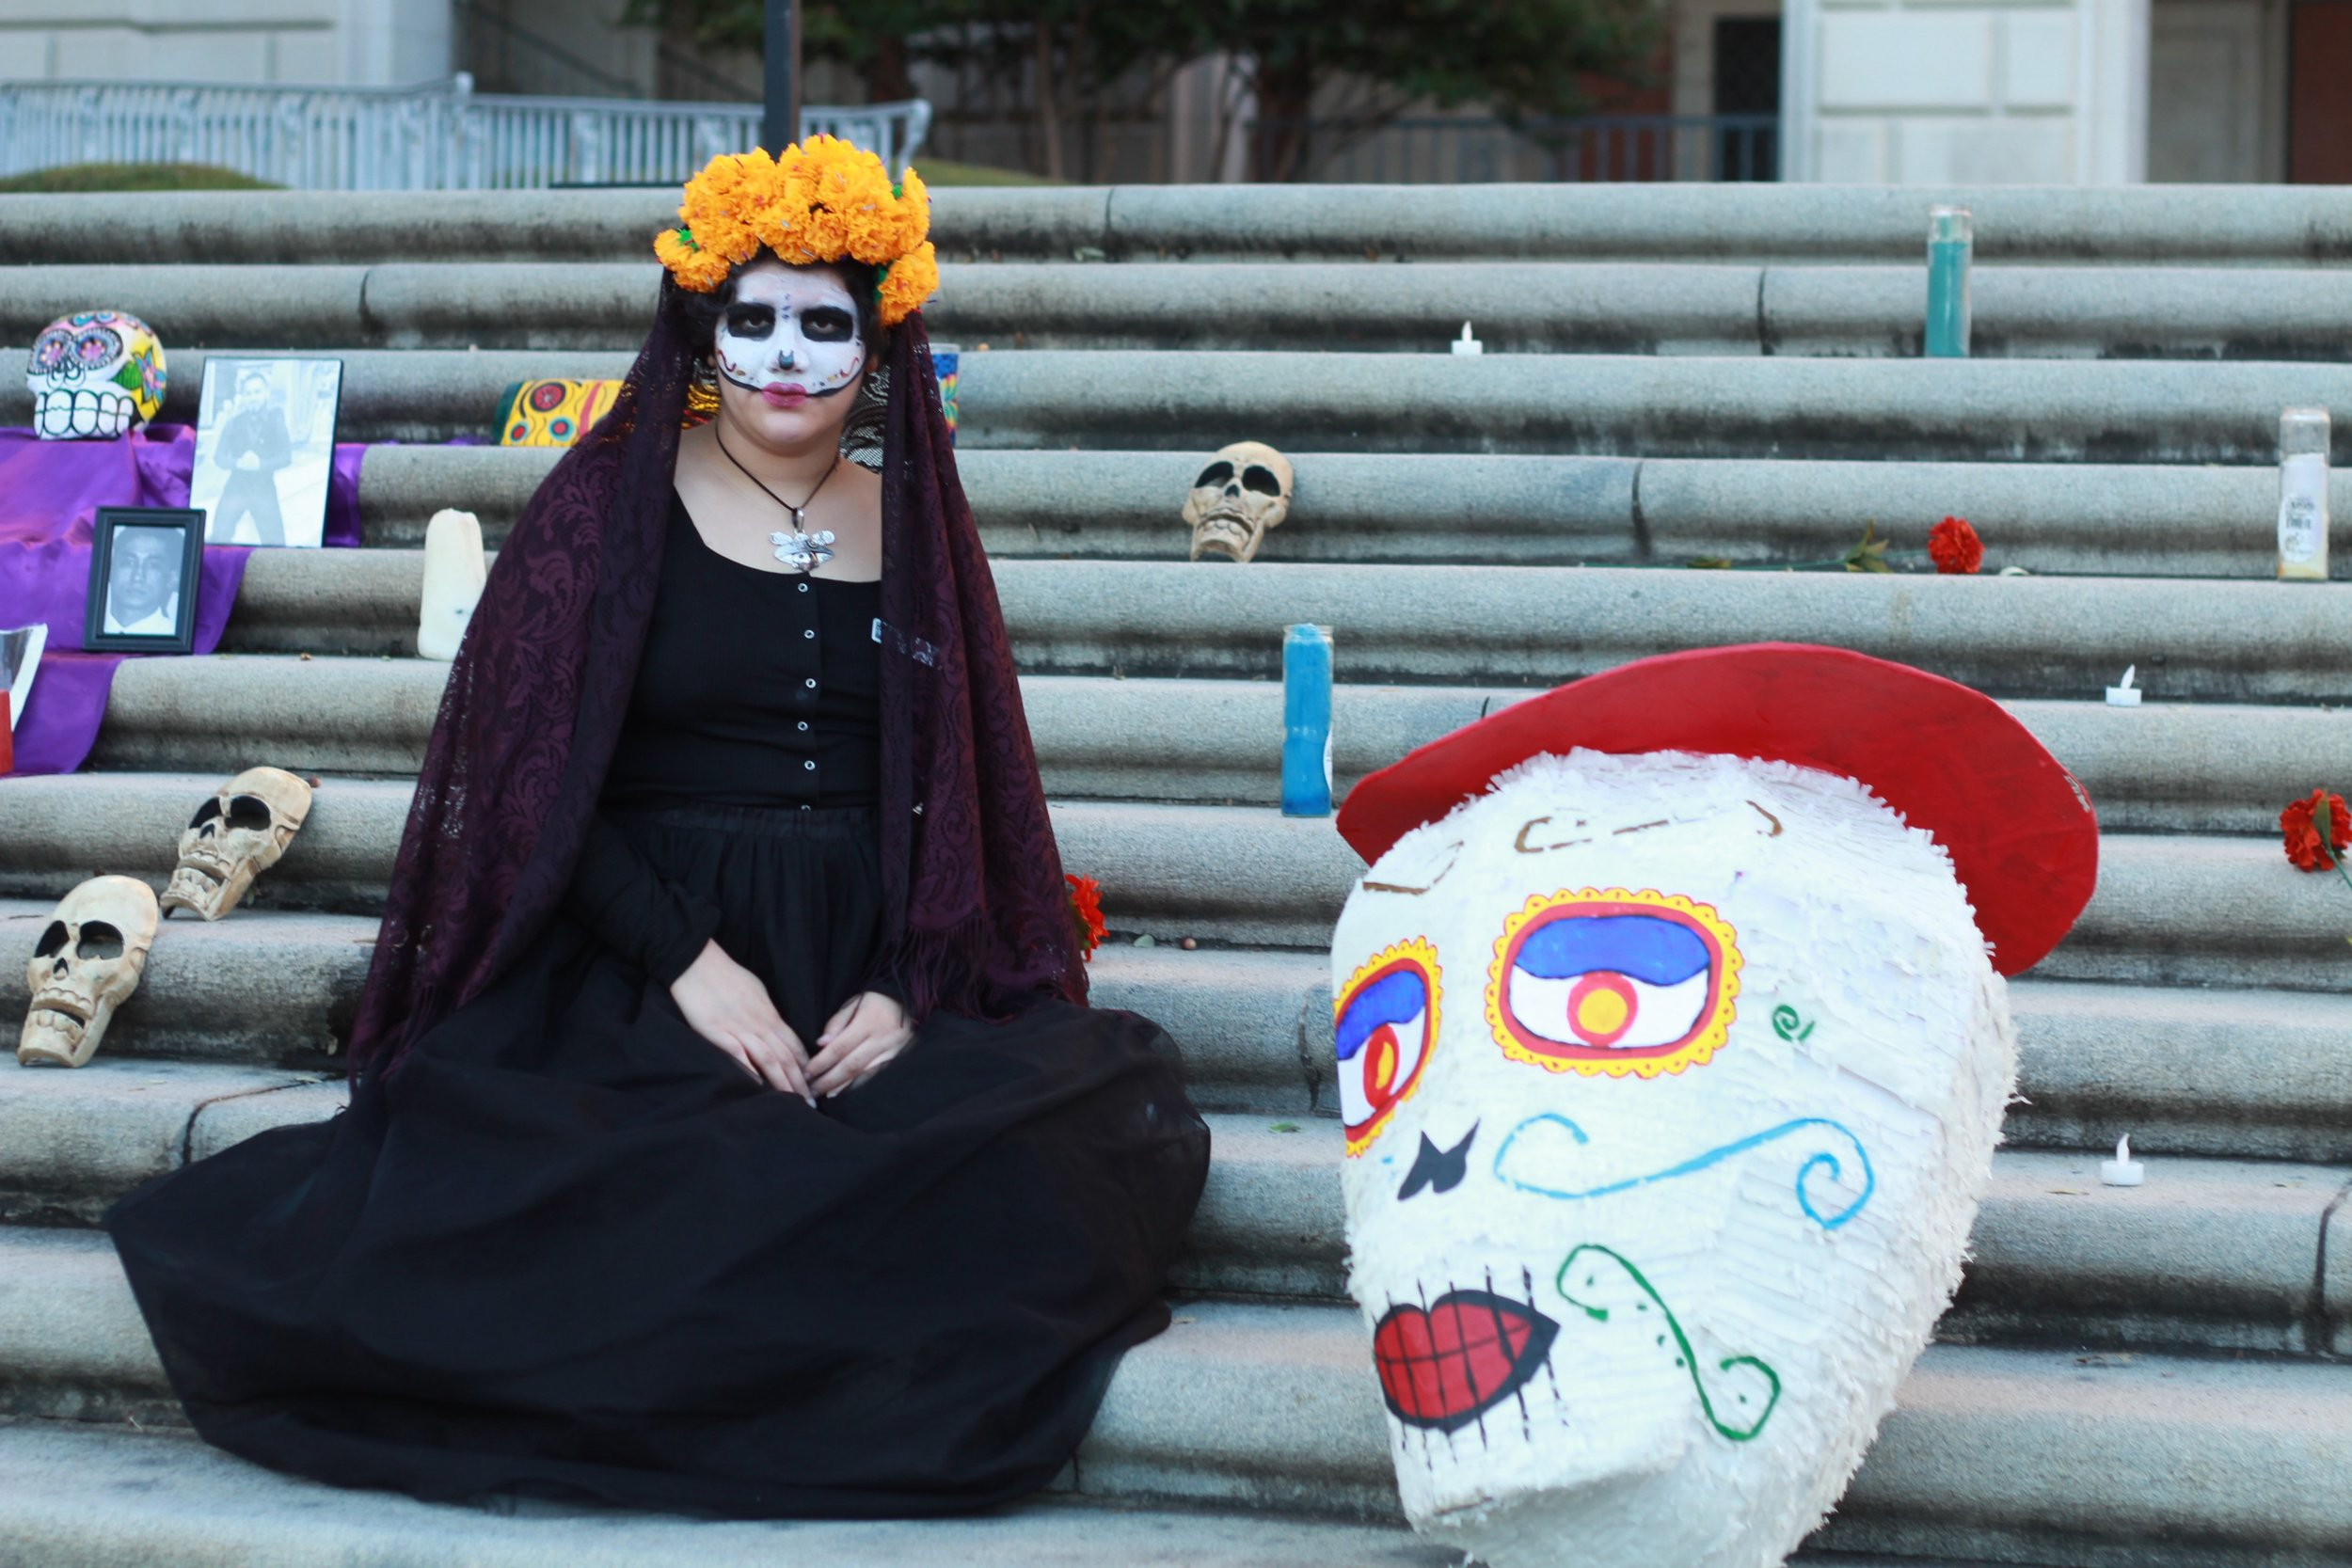 Natalia Rocafuerte of the Mexic-Arte Museum, speaks about the cultural and historical importance of Día de Los Muertos for Mexican families.